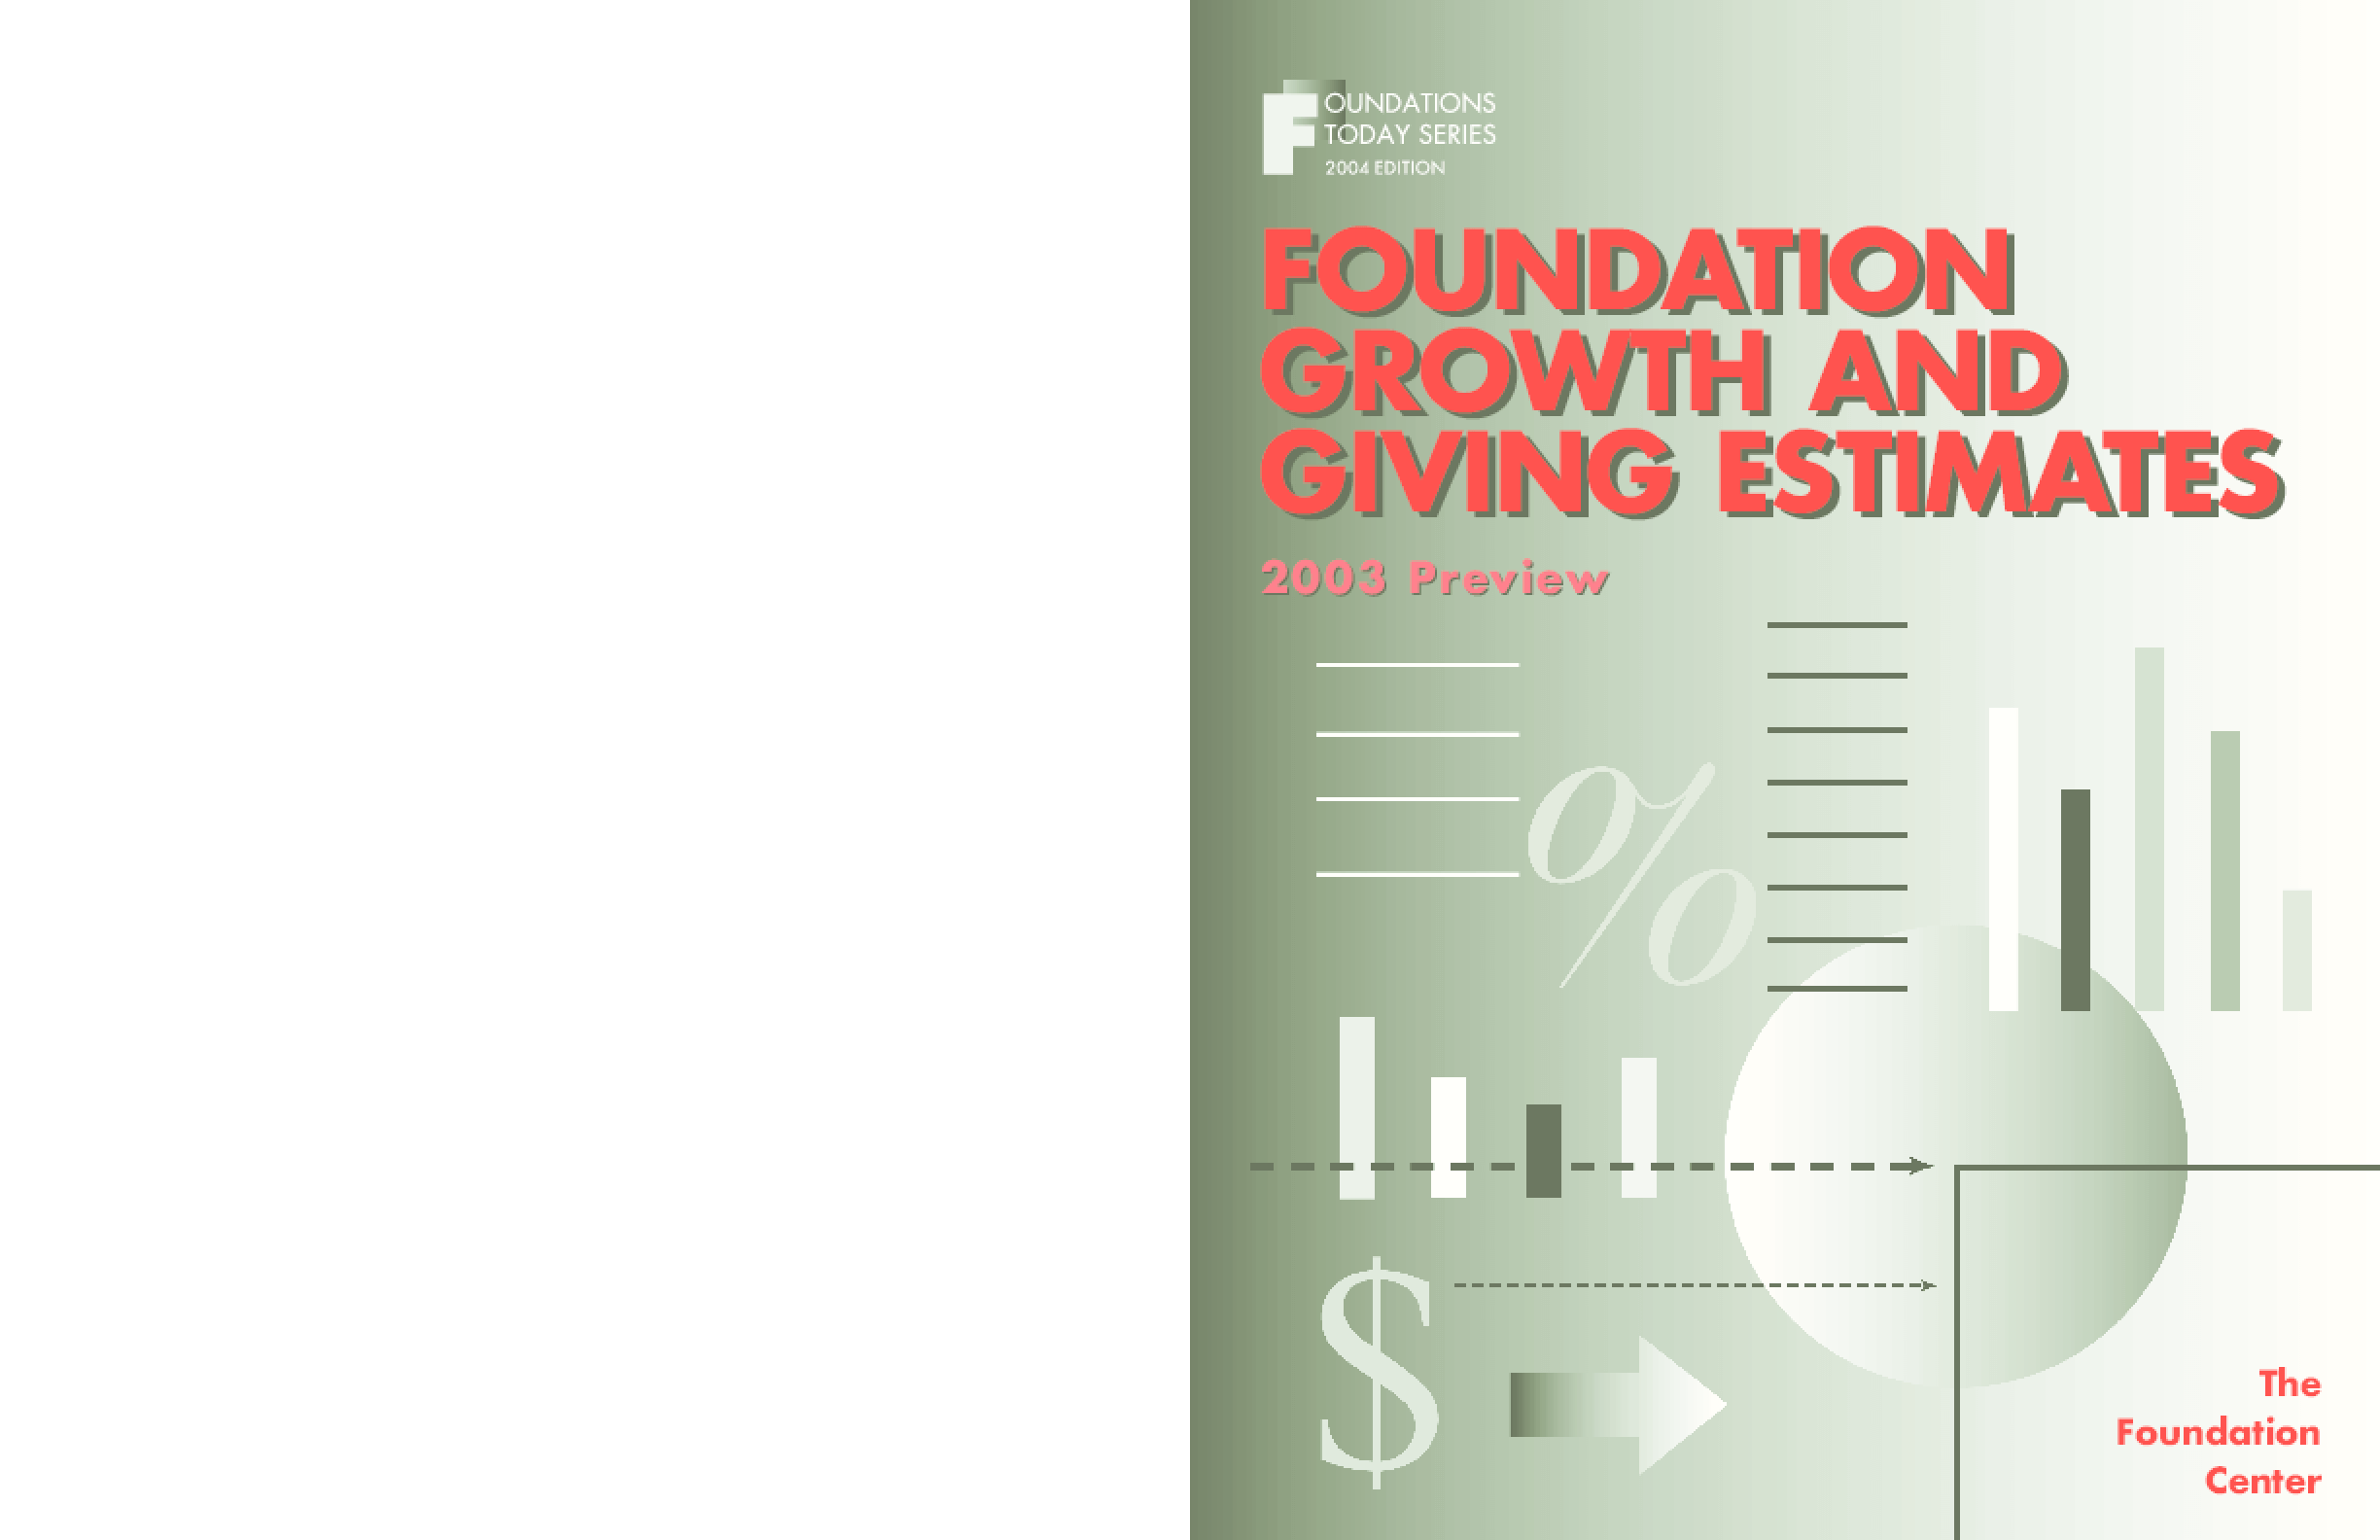 Foundations Today: Growth and Giving Estimates, 2004 edition